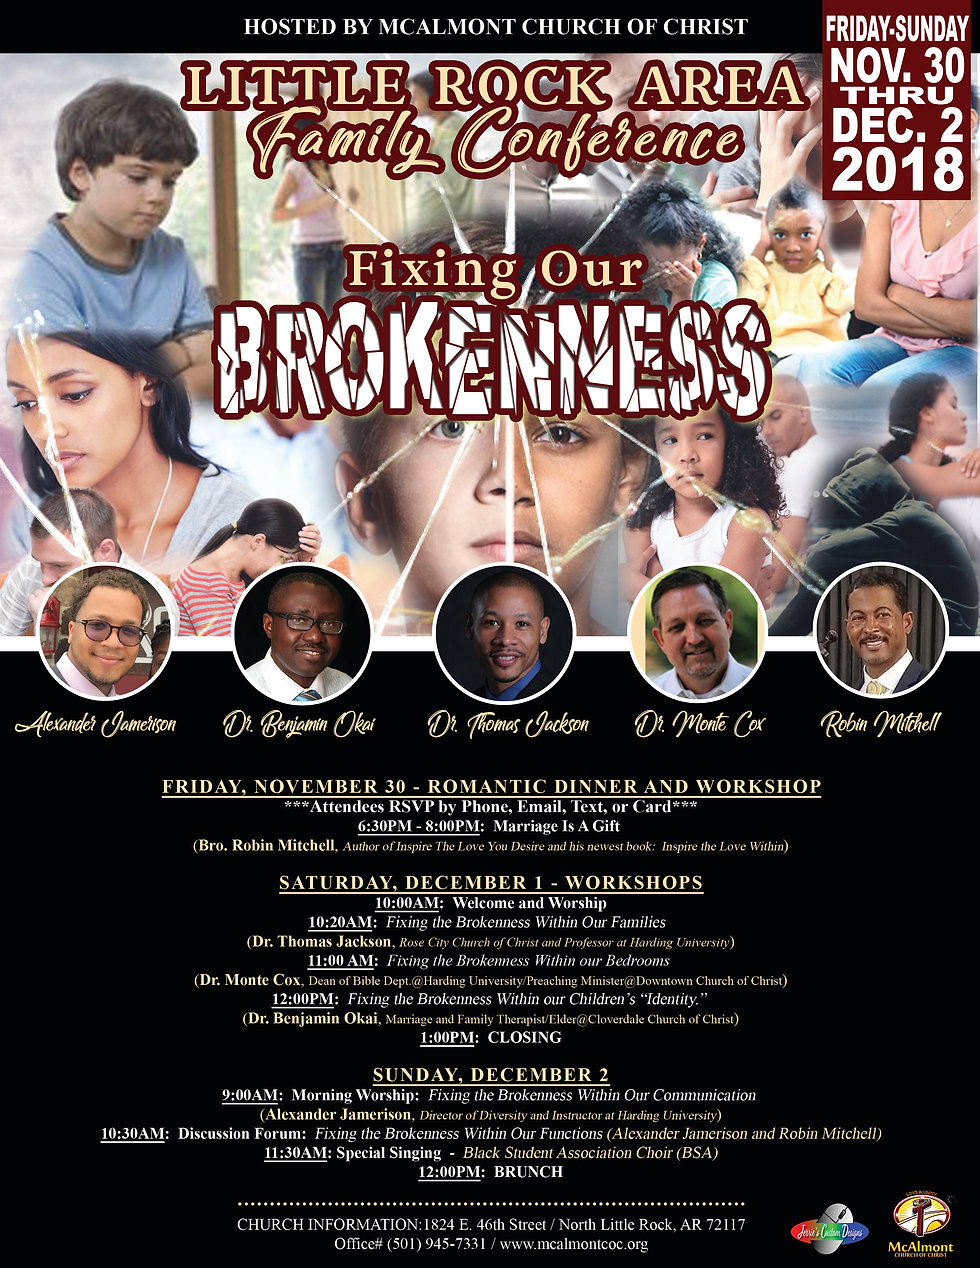 2018 LITTLE ROCK AREA FAMILY CONFERENCE